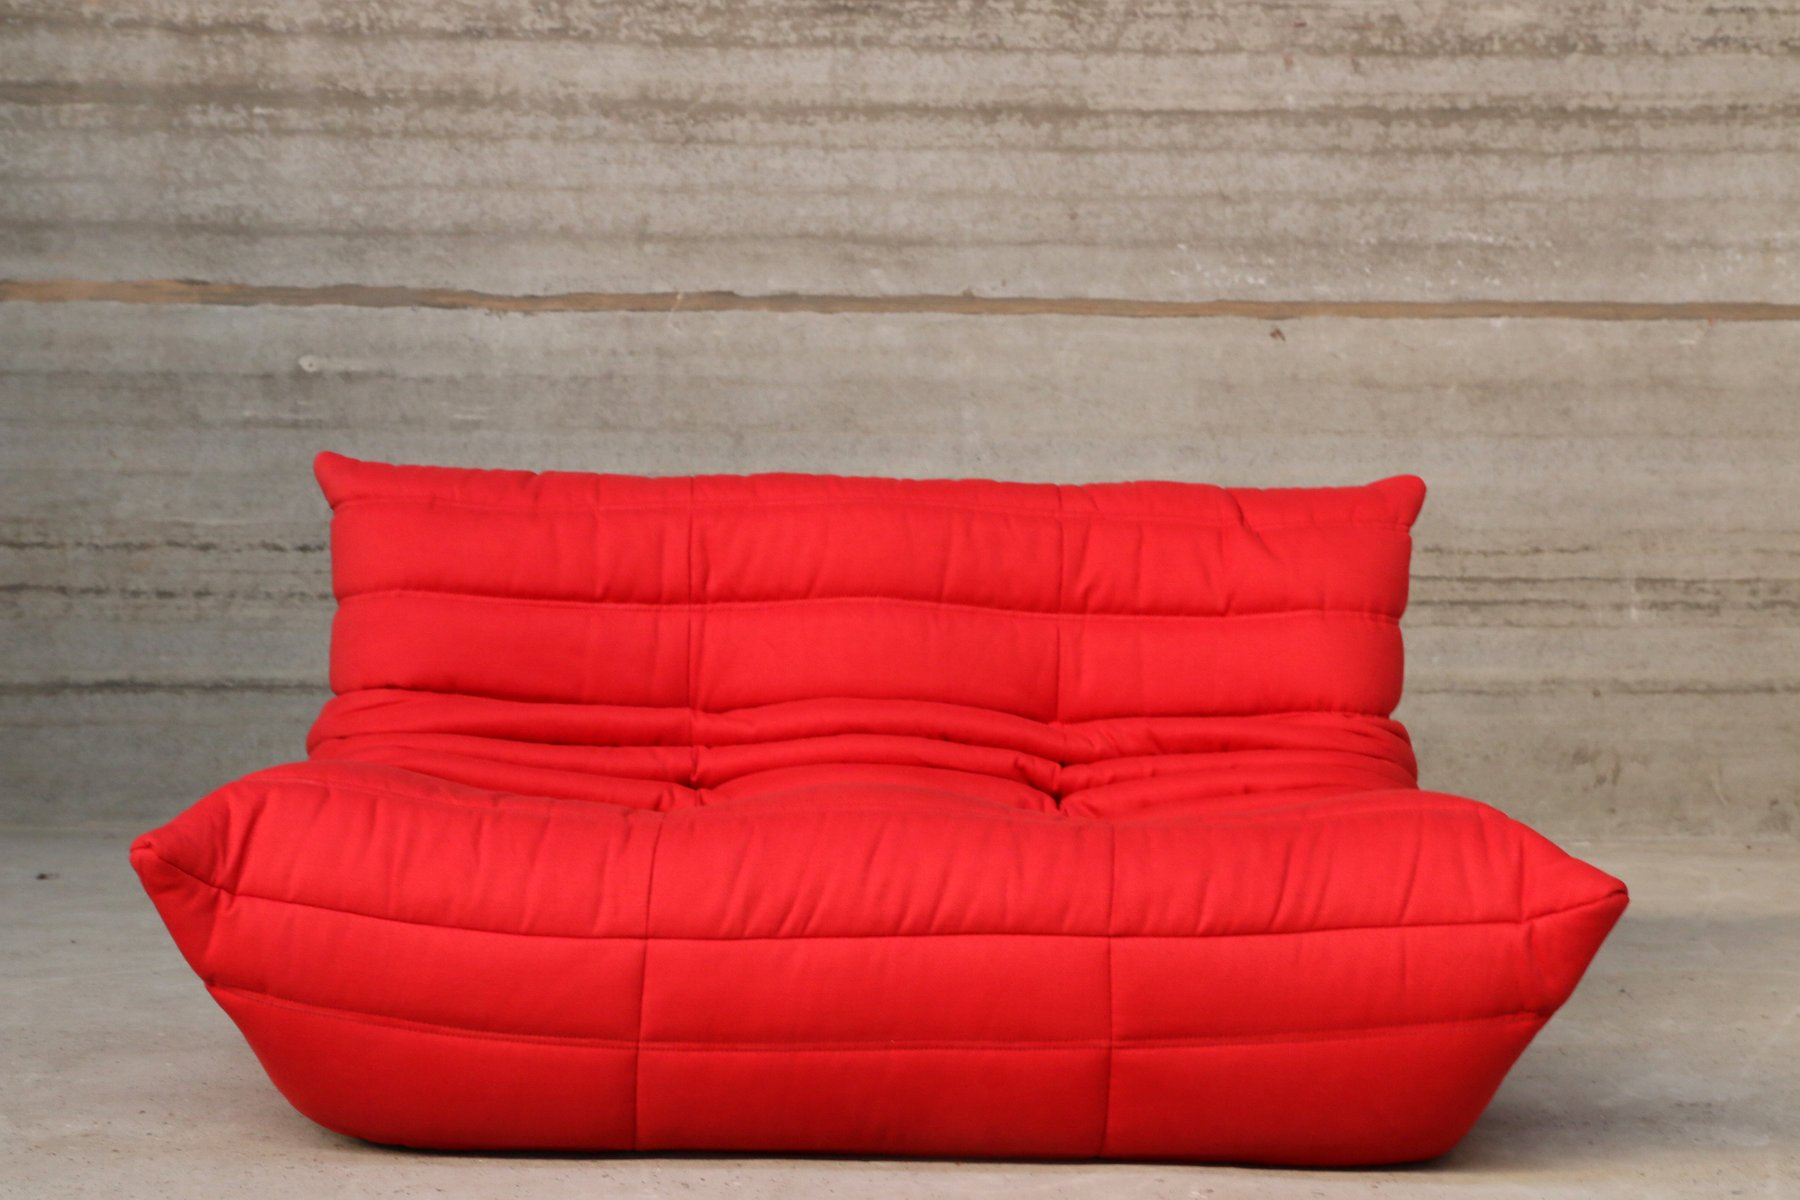 rotes vintage 2 sitzer togo sofa von ligne roset bei pamono kaufen. Black Bedroom Furniture Sets. Home Design Ideas